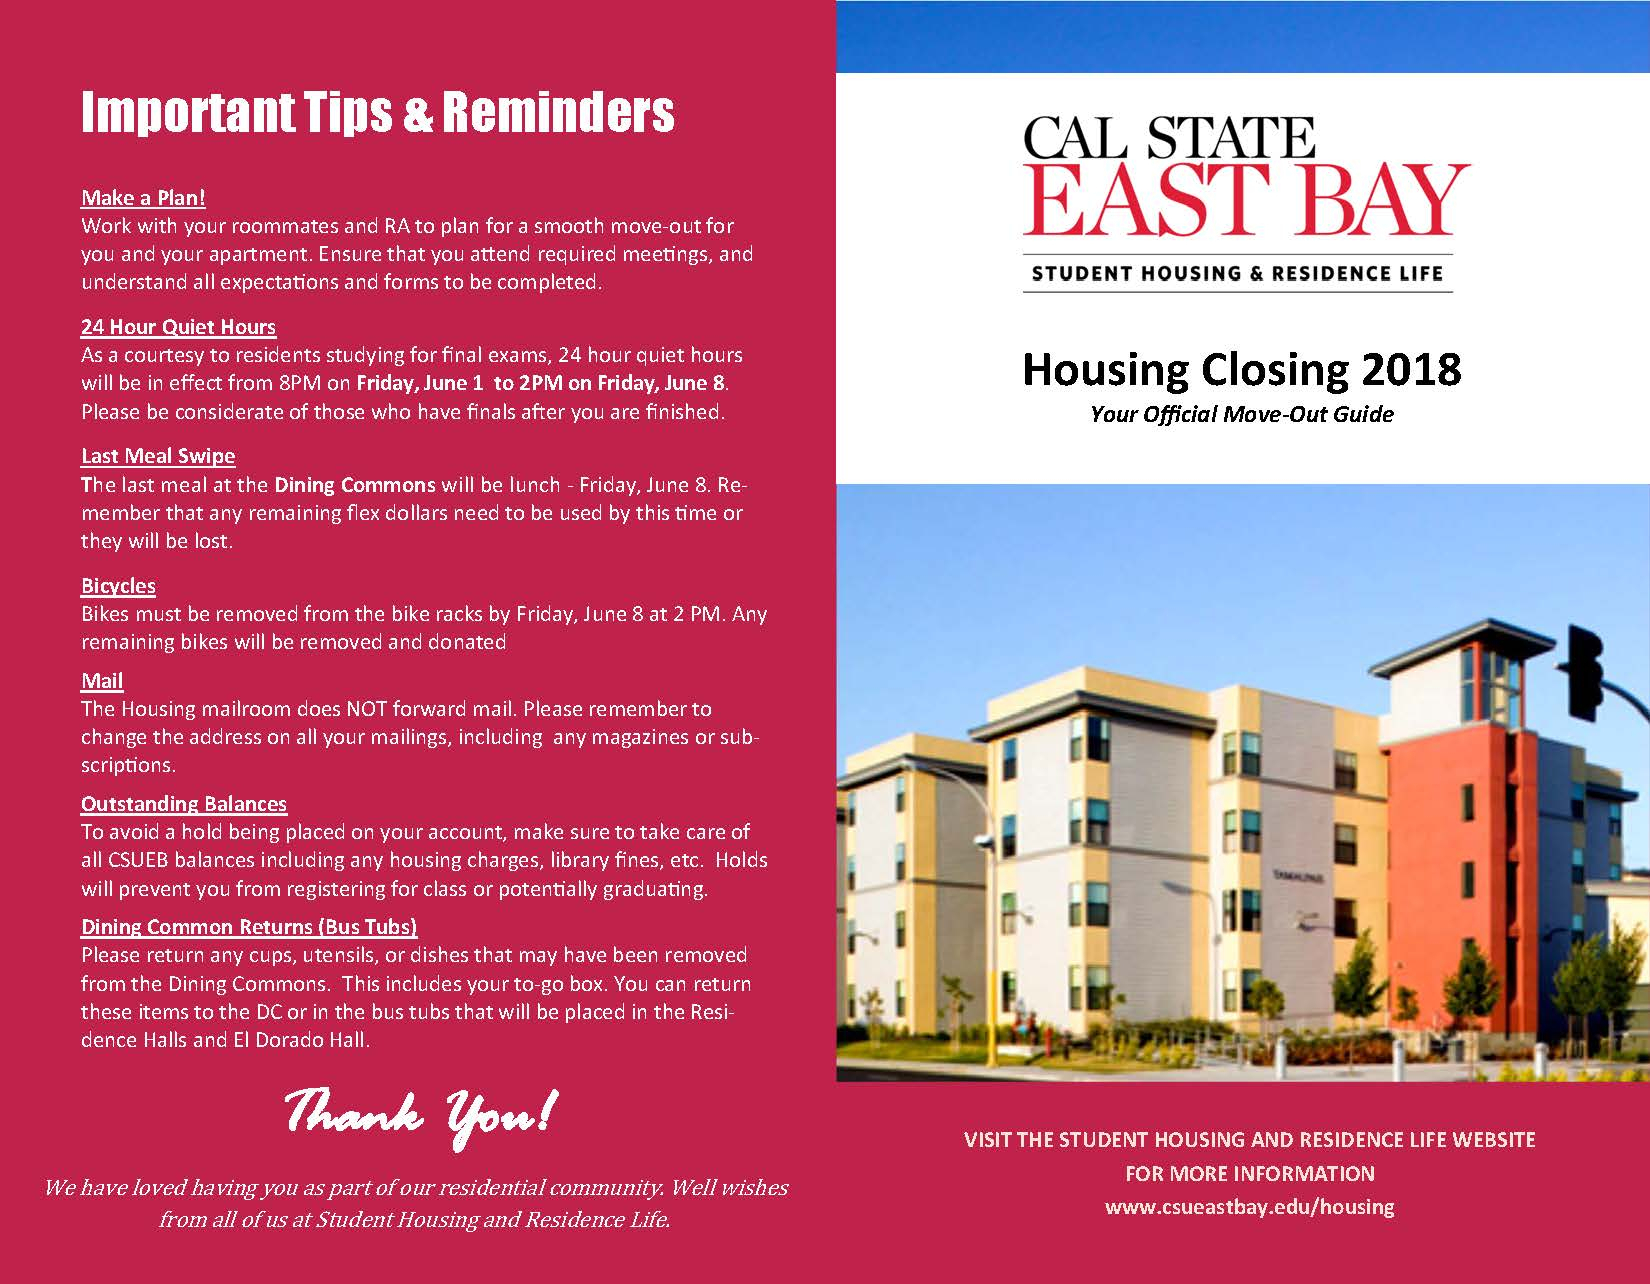 Fall 2019 Admitted Students With Fall Break For Cal State With Bingo At Turning Stone March 13